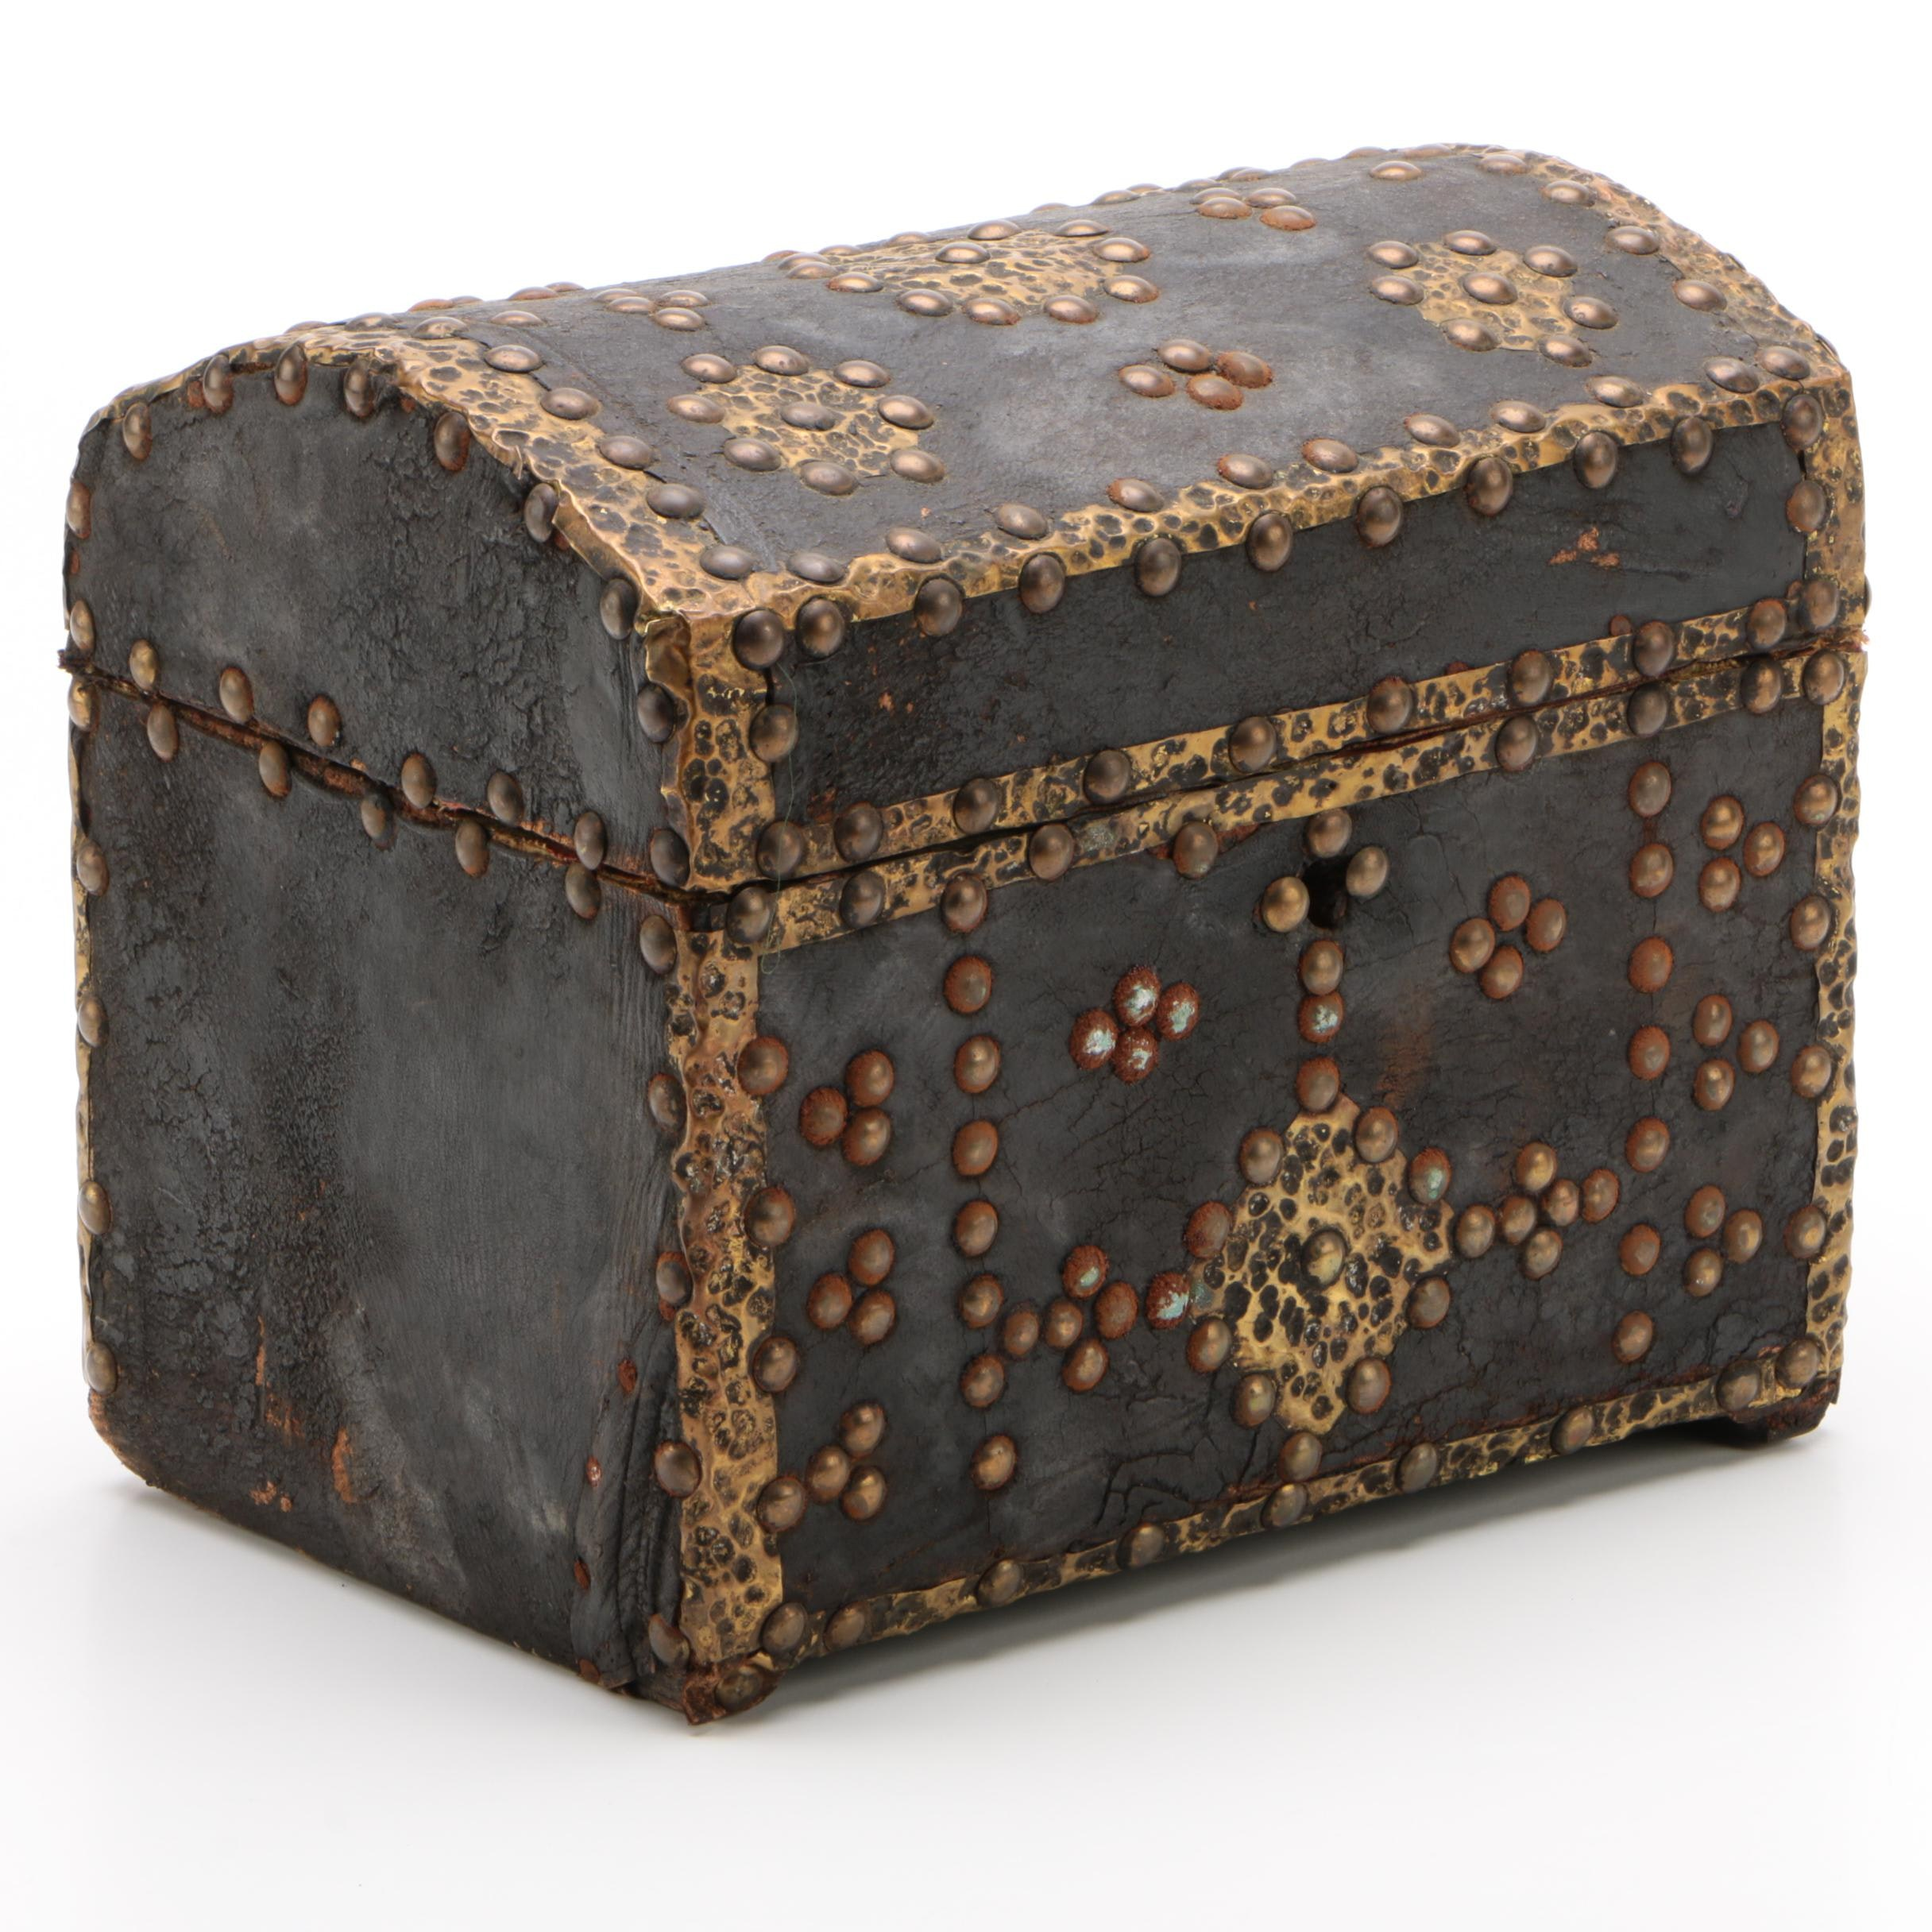 Leather and Brass Embellished Dome Top Table Chest, Late 19th Century